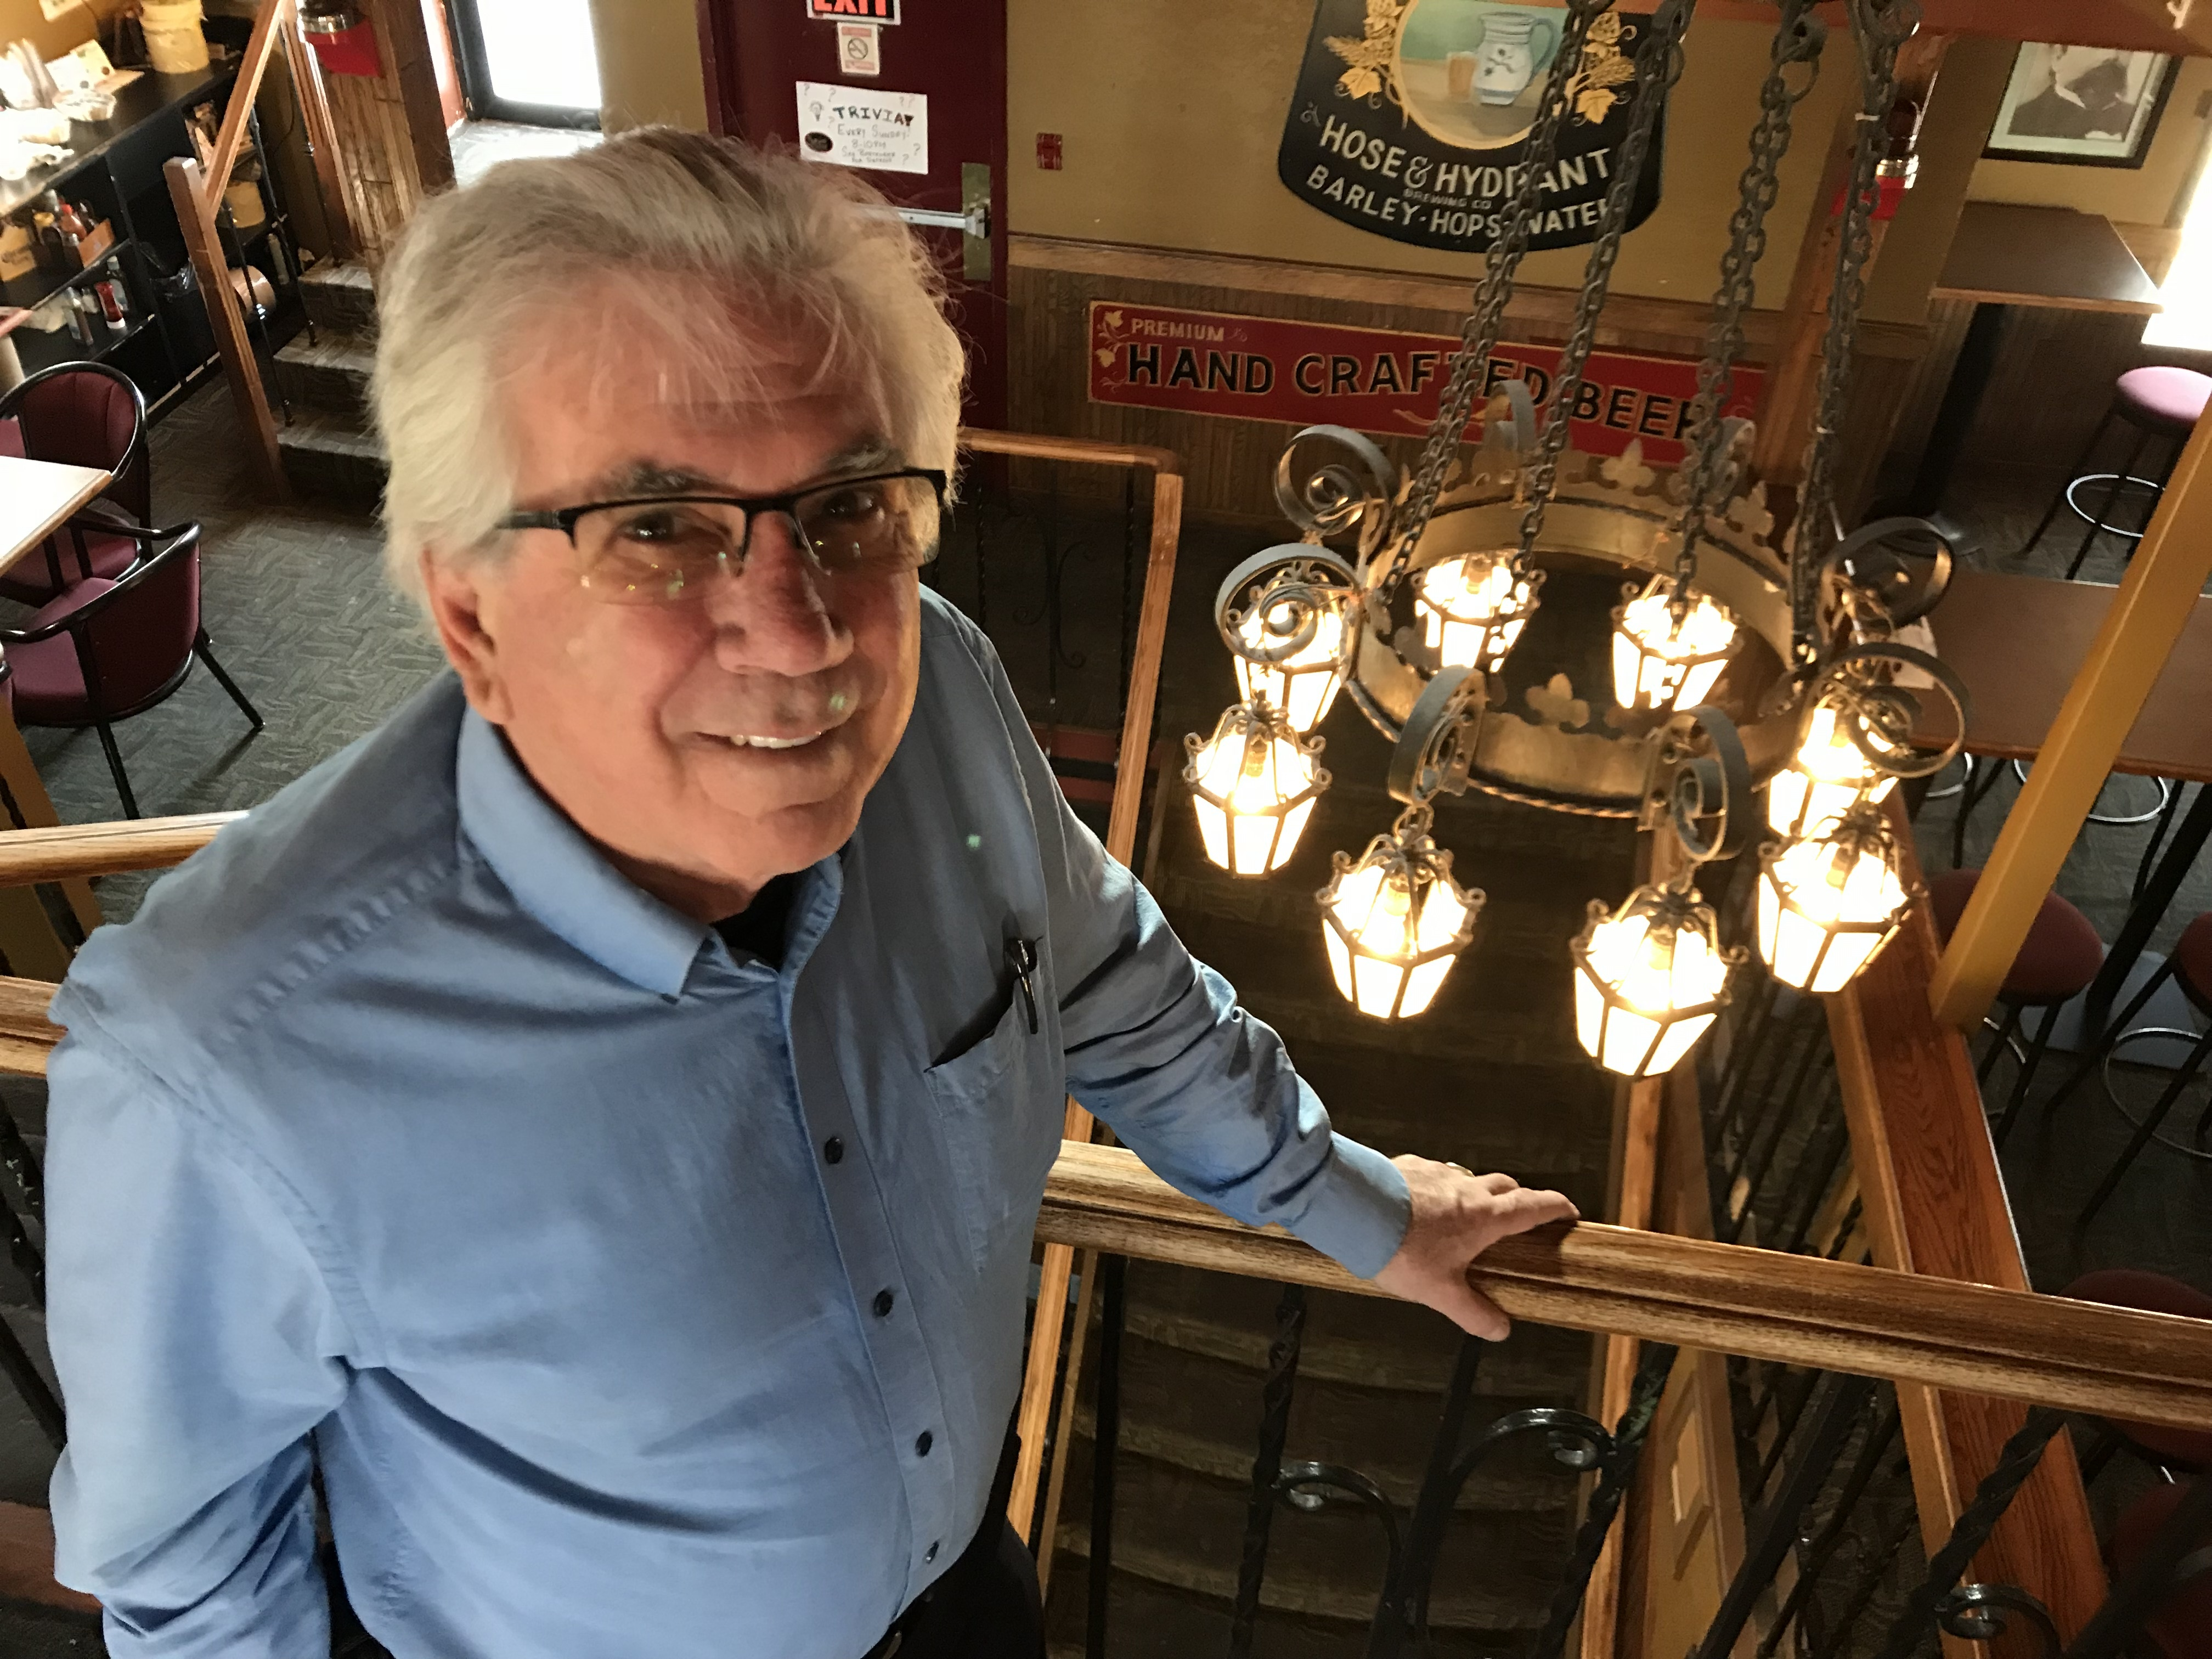 """""""They were just sitting in this warehouse, gathering dust, of no value to anyone else,"""" says Ken Achs of Capitol chandeliers he incorporated into the Hose and Hydrant restaurant. (Guy Quenneville/CBC)"""